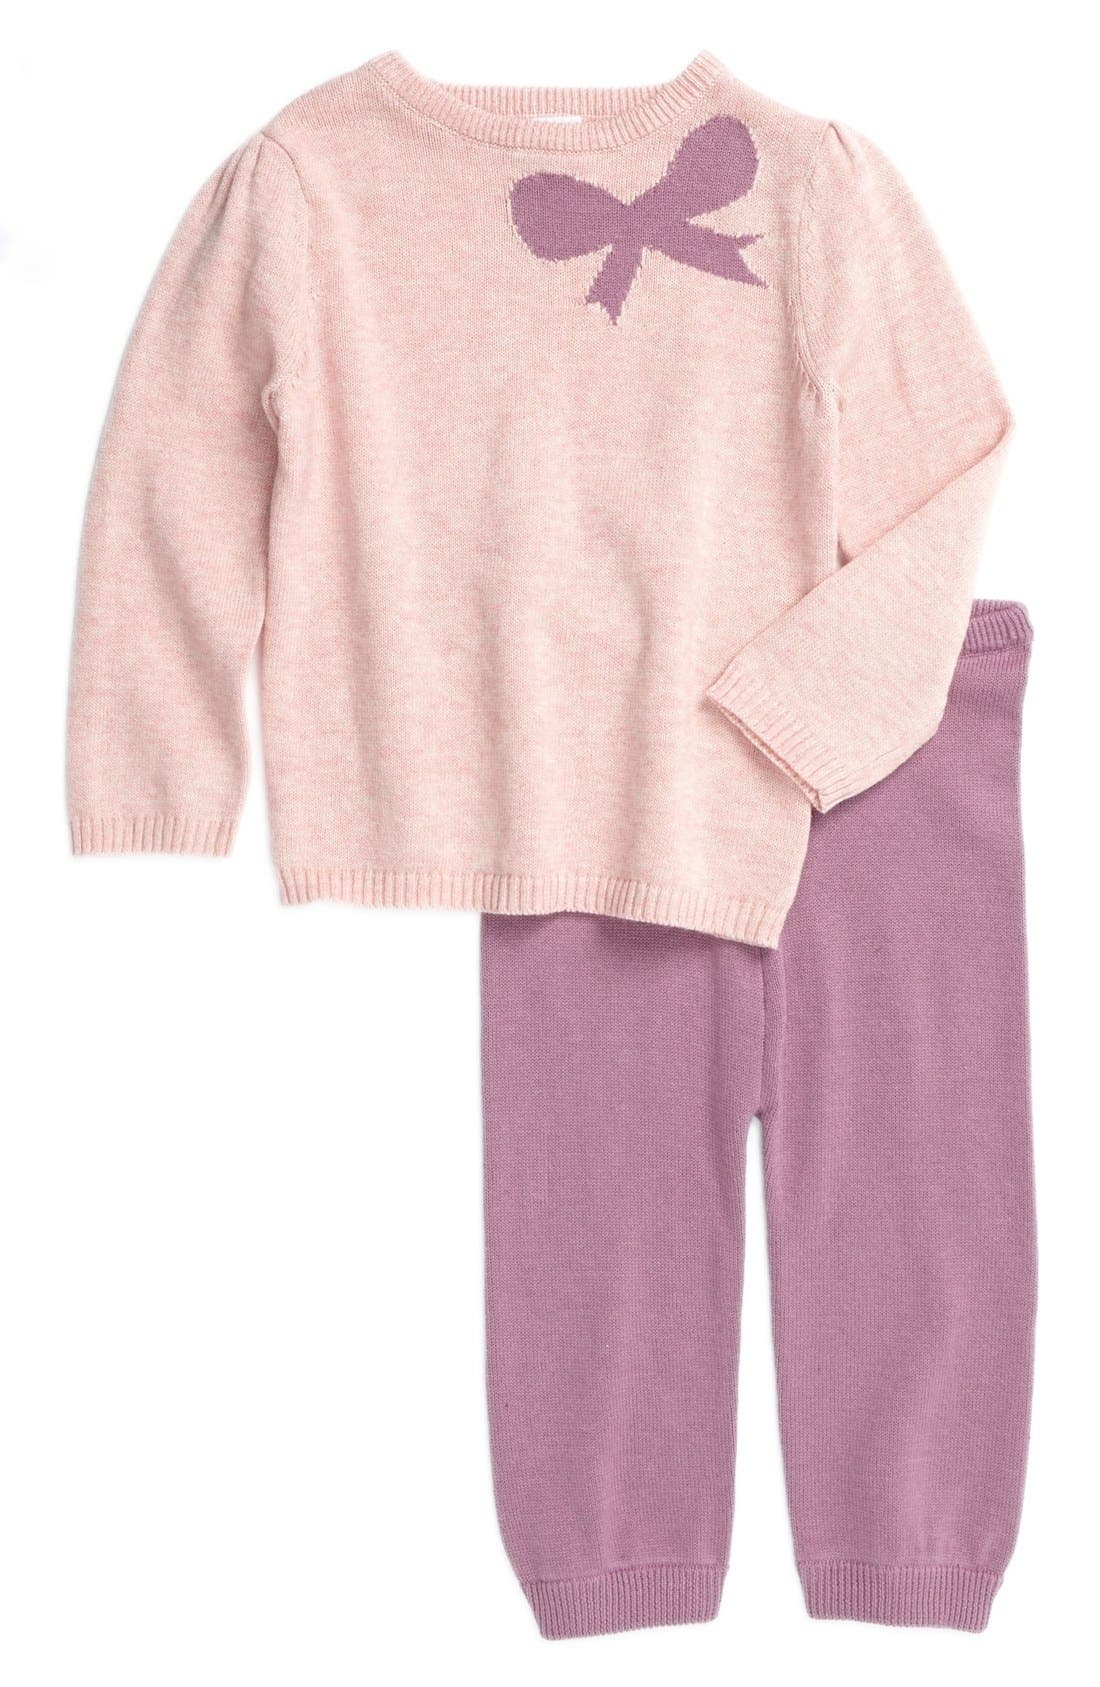 Main Image - egg by susan lazar Sweater & Pants (Baby Girls)